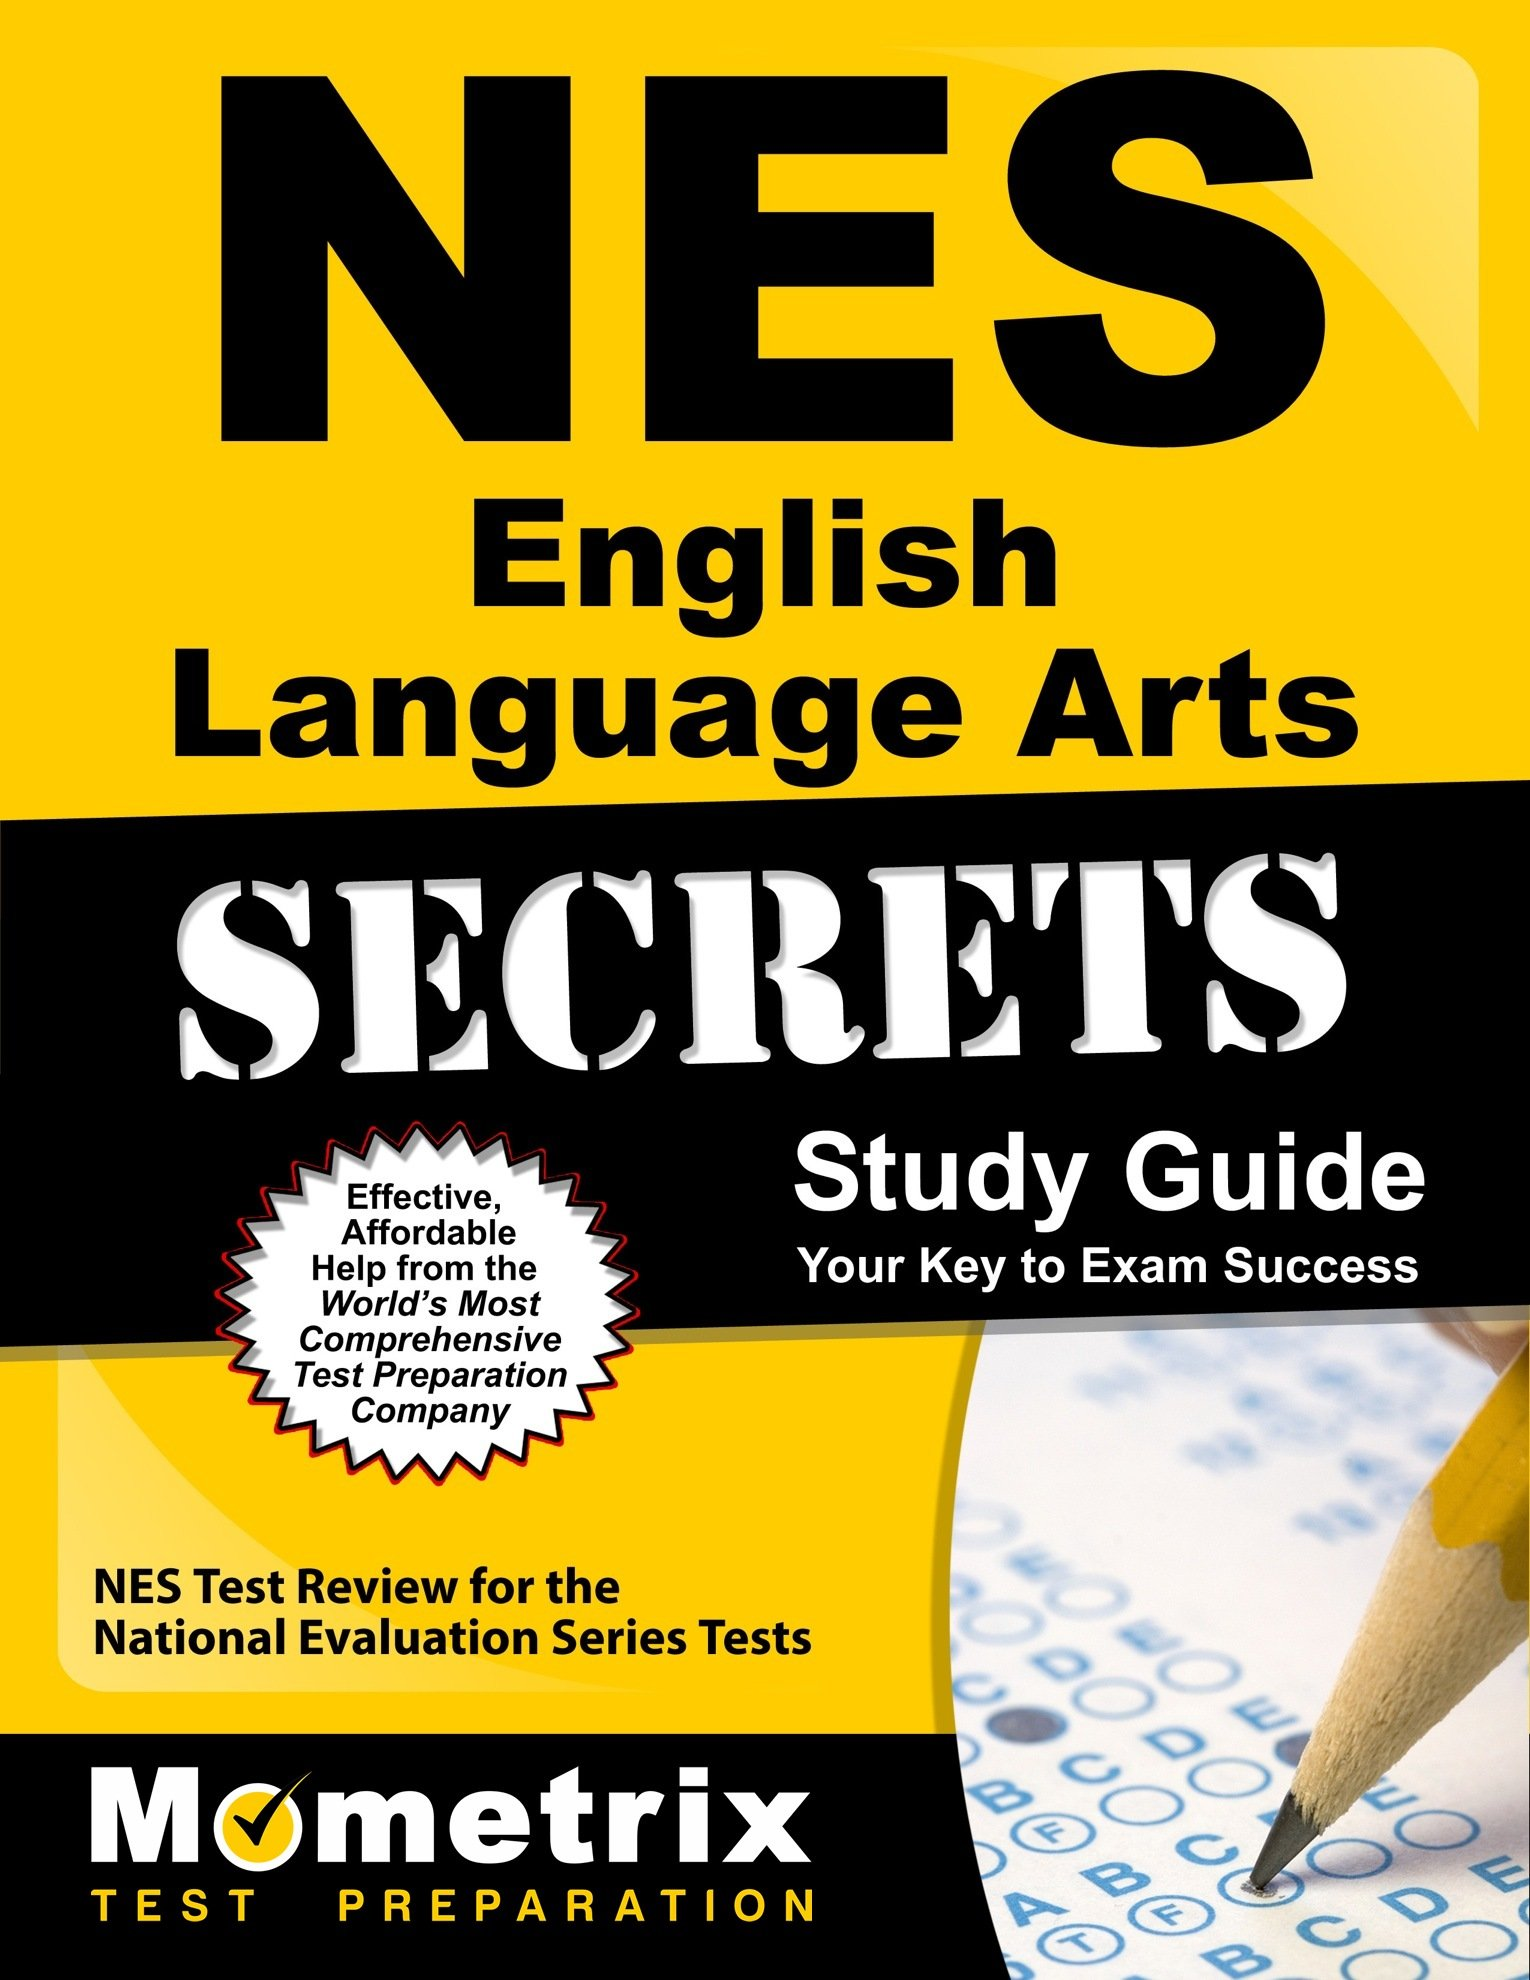 NES English Language Arts Secrets Study Guide: NES Test Review for the National Evaluation Series Tests (Mometrix Secrets Study Guides) by Mometrix Media LLC